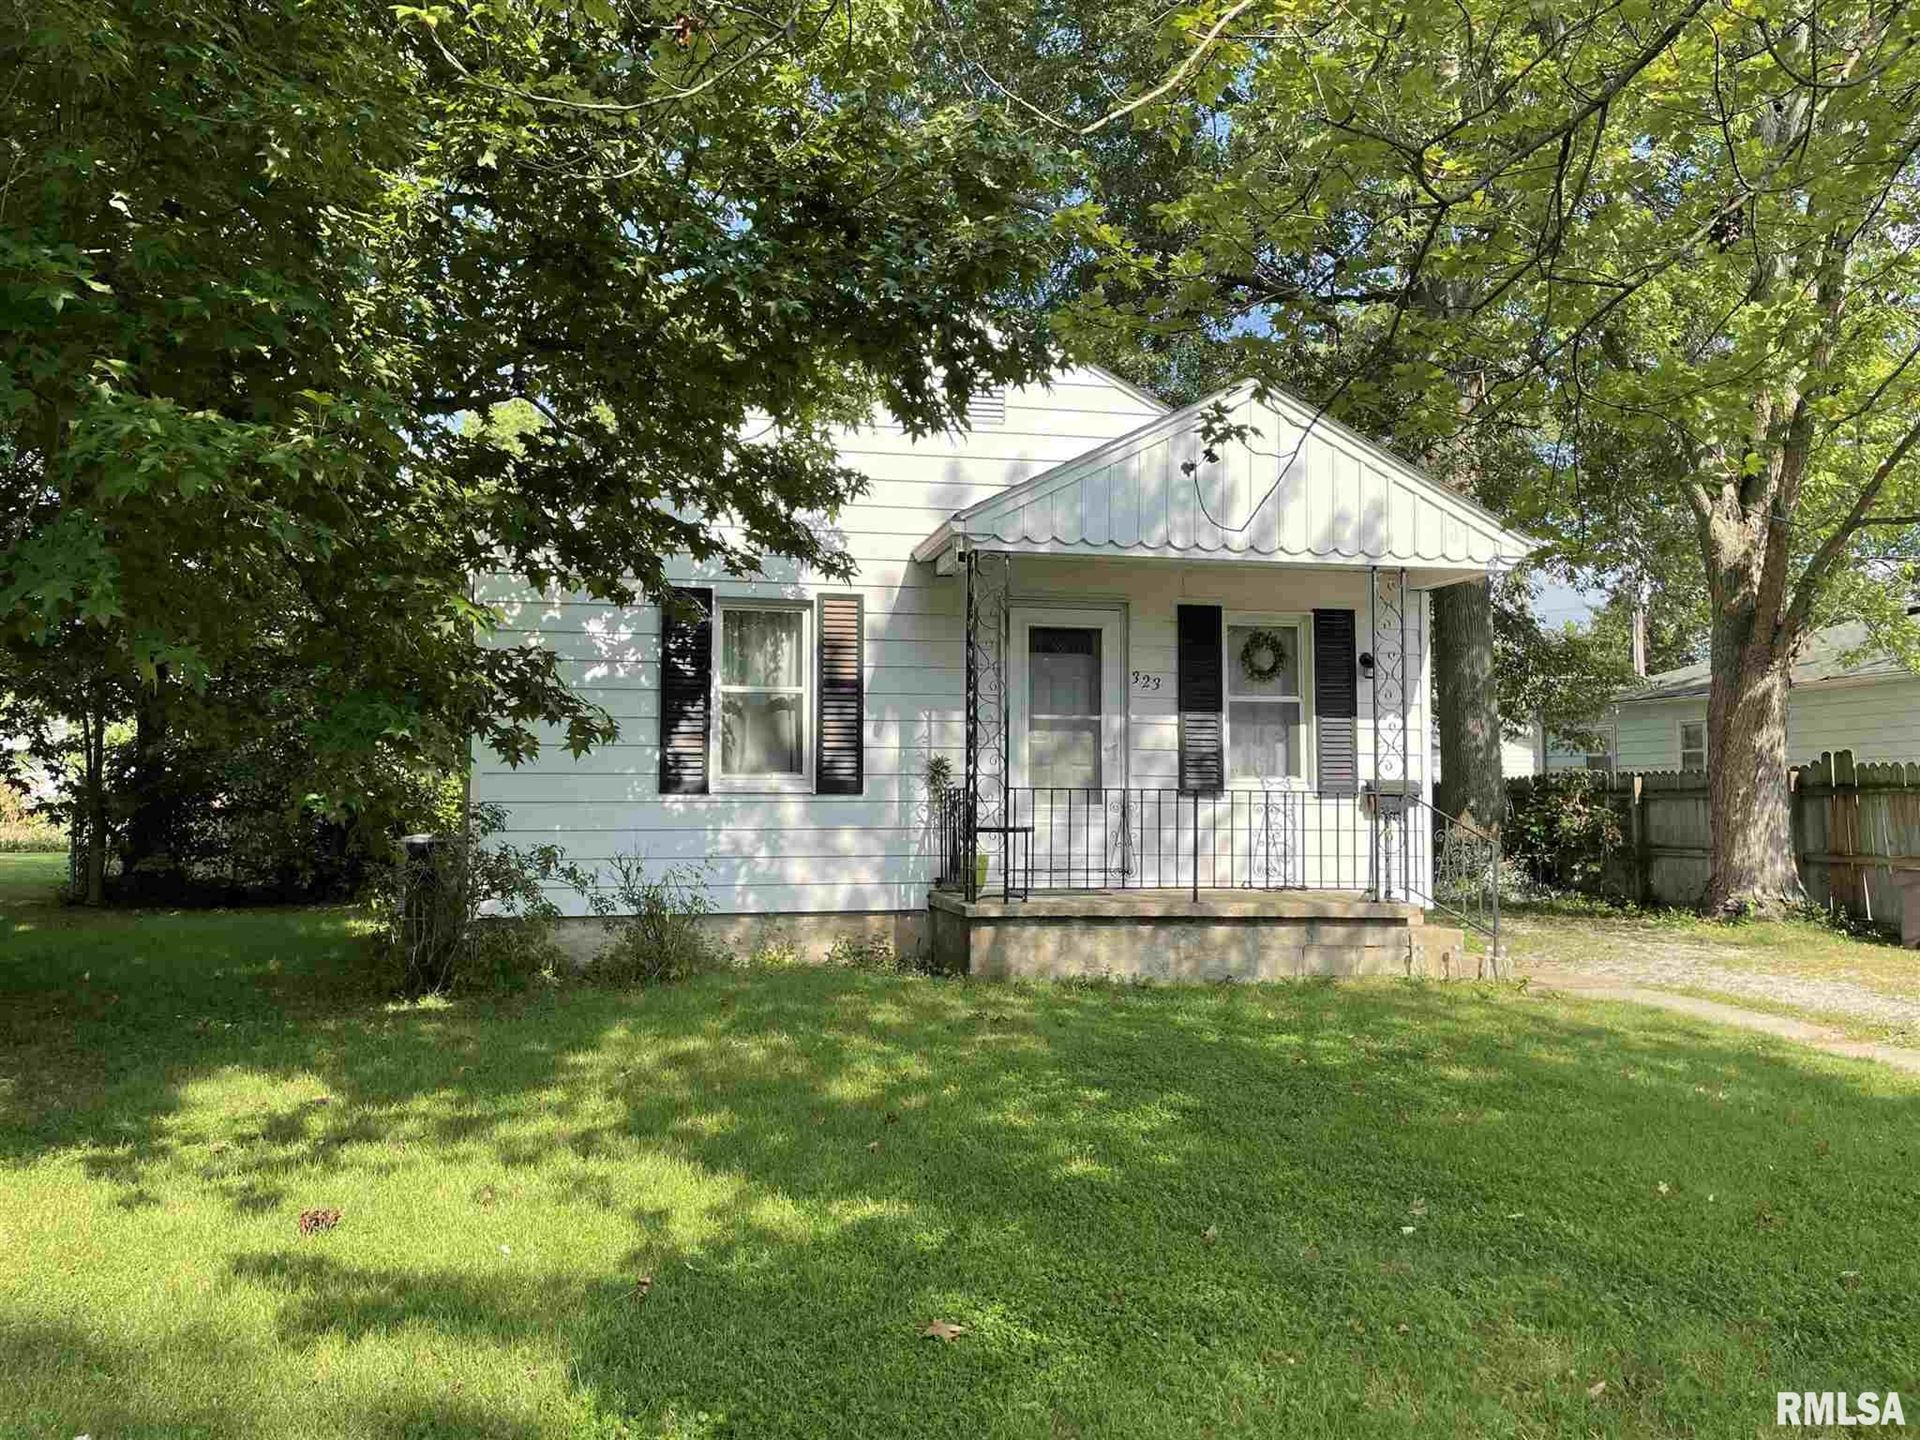 323 S 3RD, Marion, IL 62959 - MLS#: EB440911